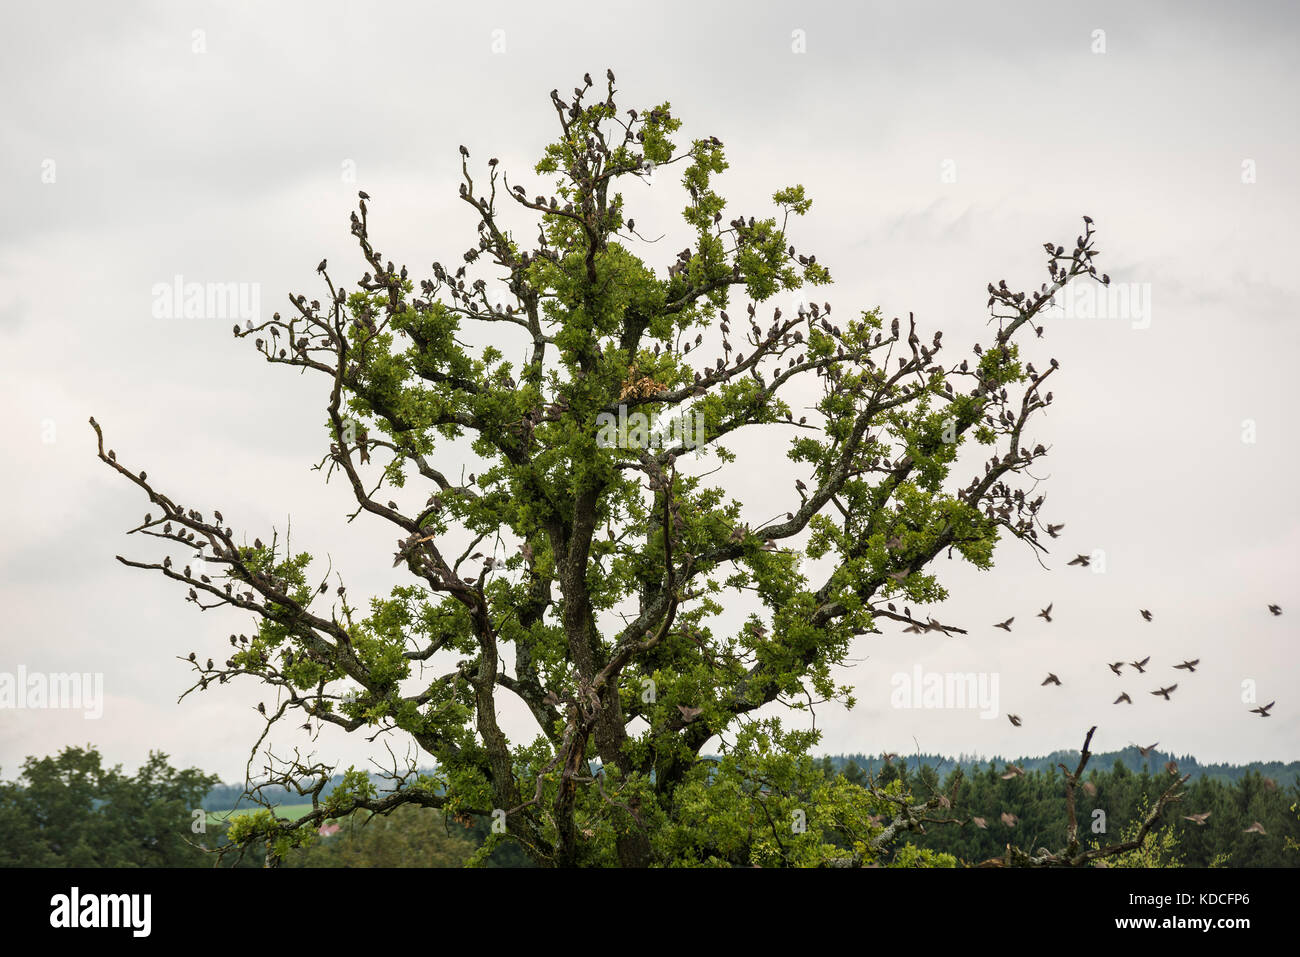 Flock of Starlings - Migrating Birds on tree - Stock Image